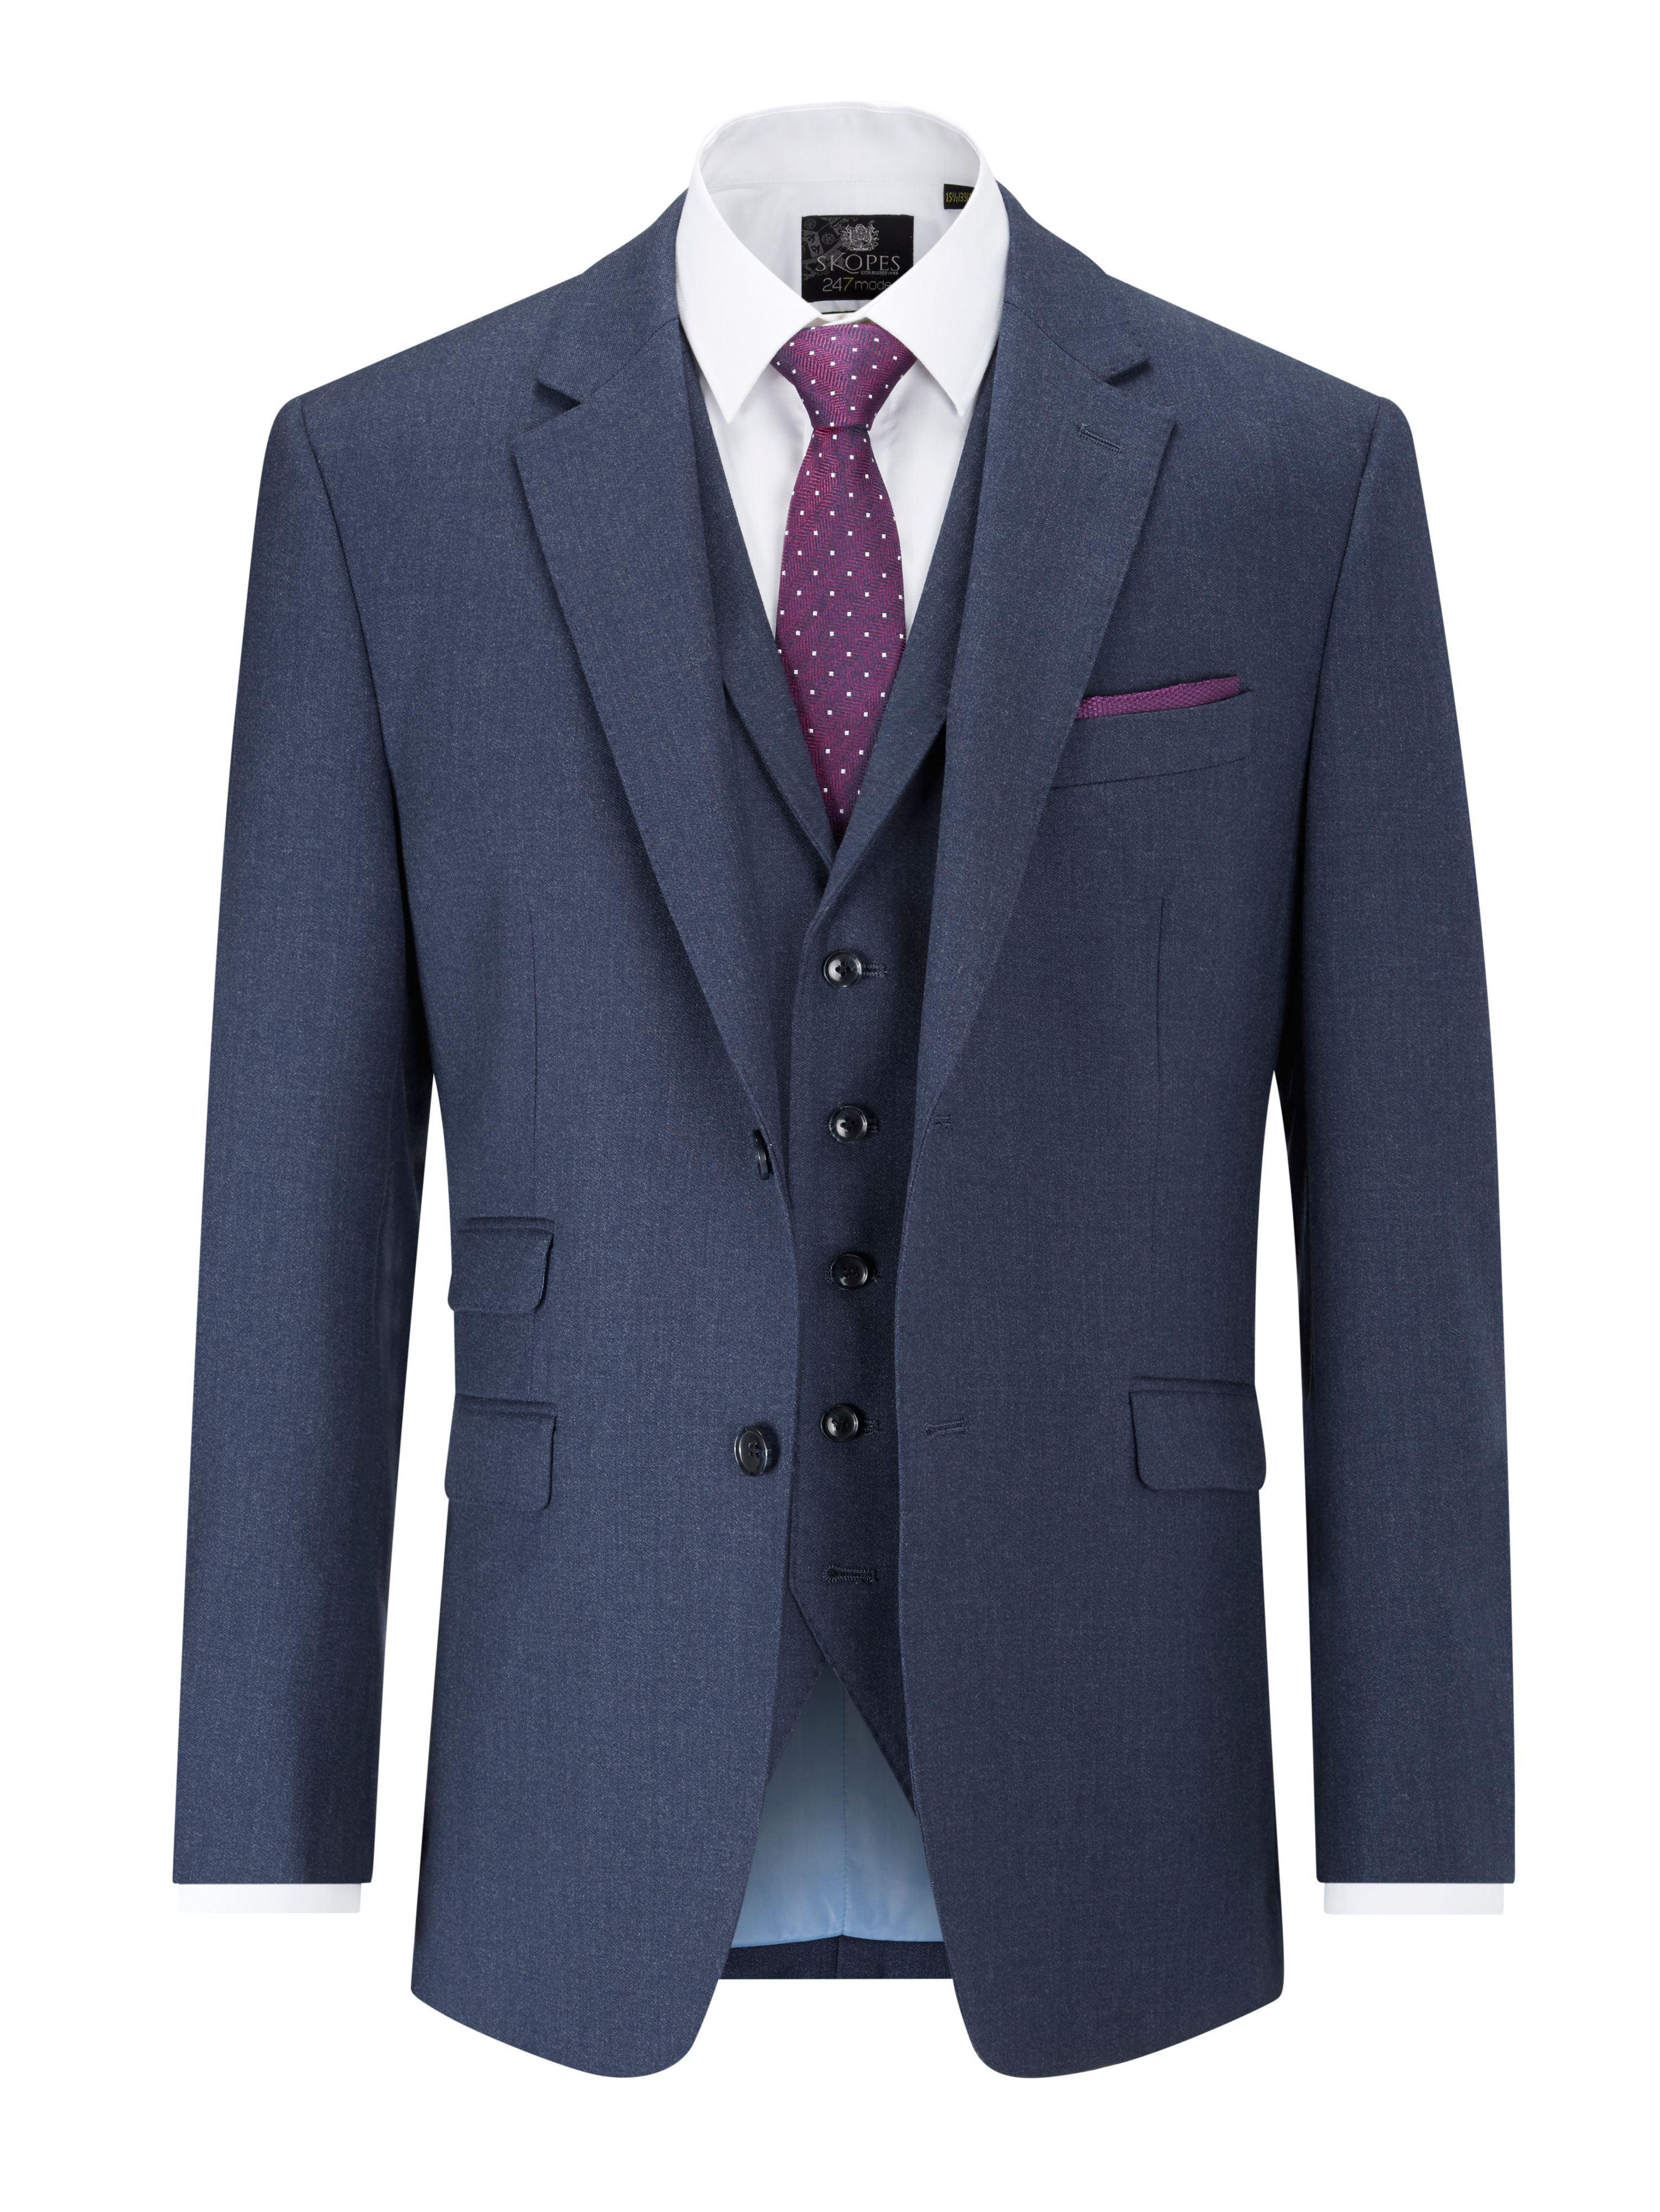 In clothing, a suit is a set of garments made from the same cloth, usually consisting of at least a jacket and anthonyevans.tk suits (also known as business suits when sober in colour and style), which originated in Britain as country wear, are the most common style of Western suit. Other types of suit still worn today are the dinner suit, part of black tie, which arose as a lounging.